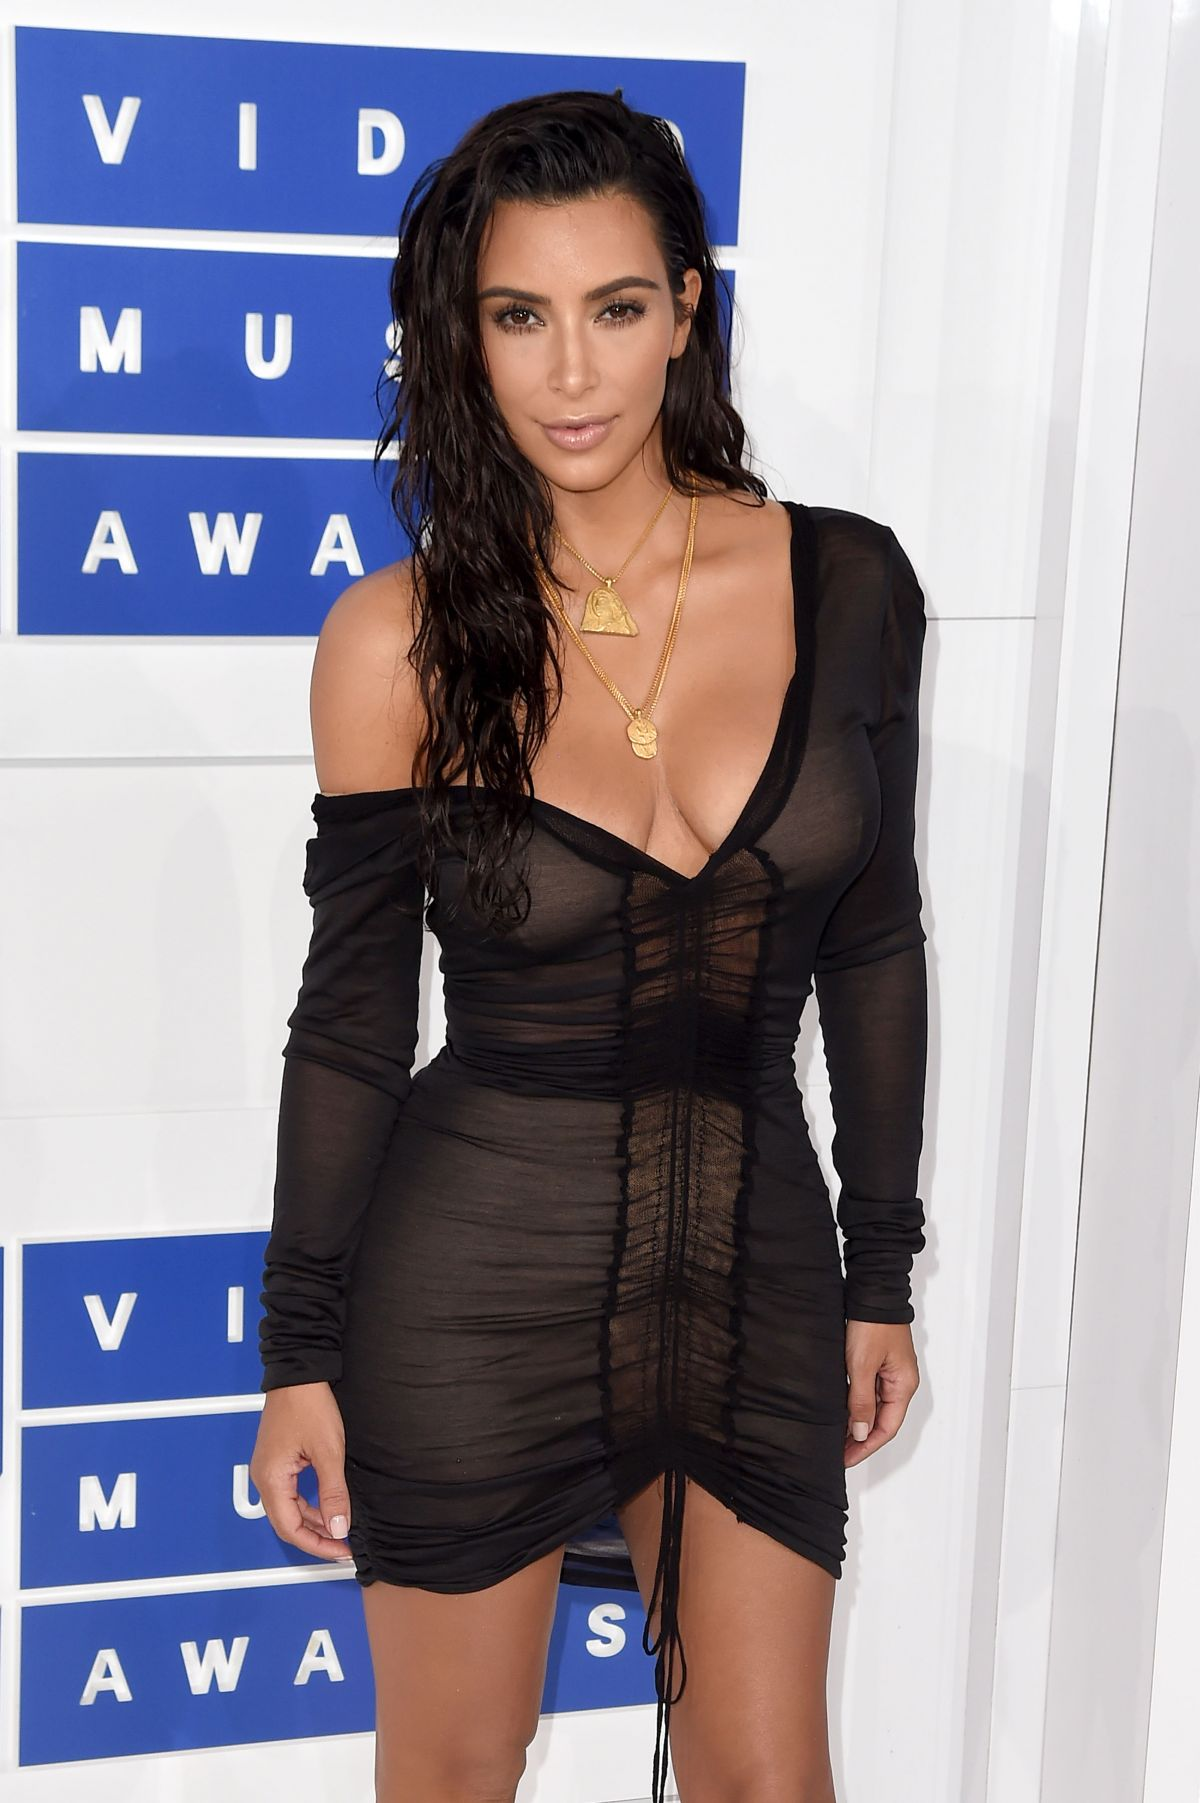 Kim Kardashian At 2016 MTV VMAs in NYC